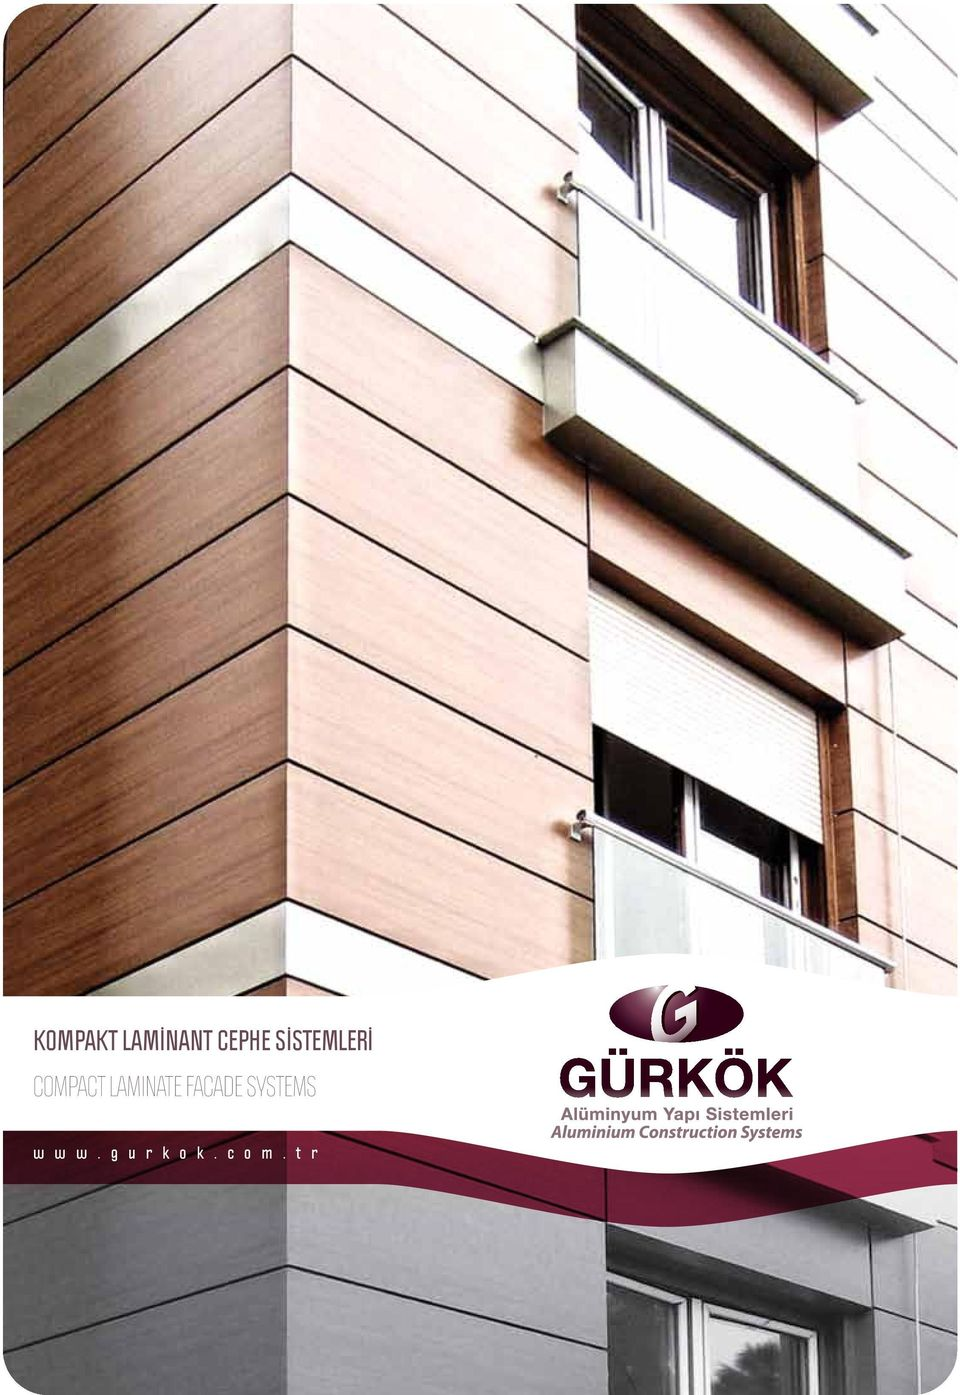 LAMINATE FACADE SYSTEMS